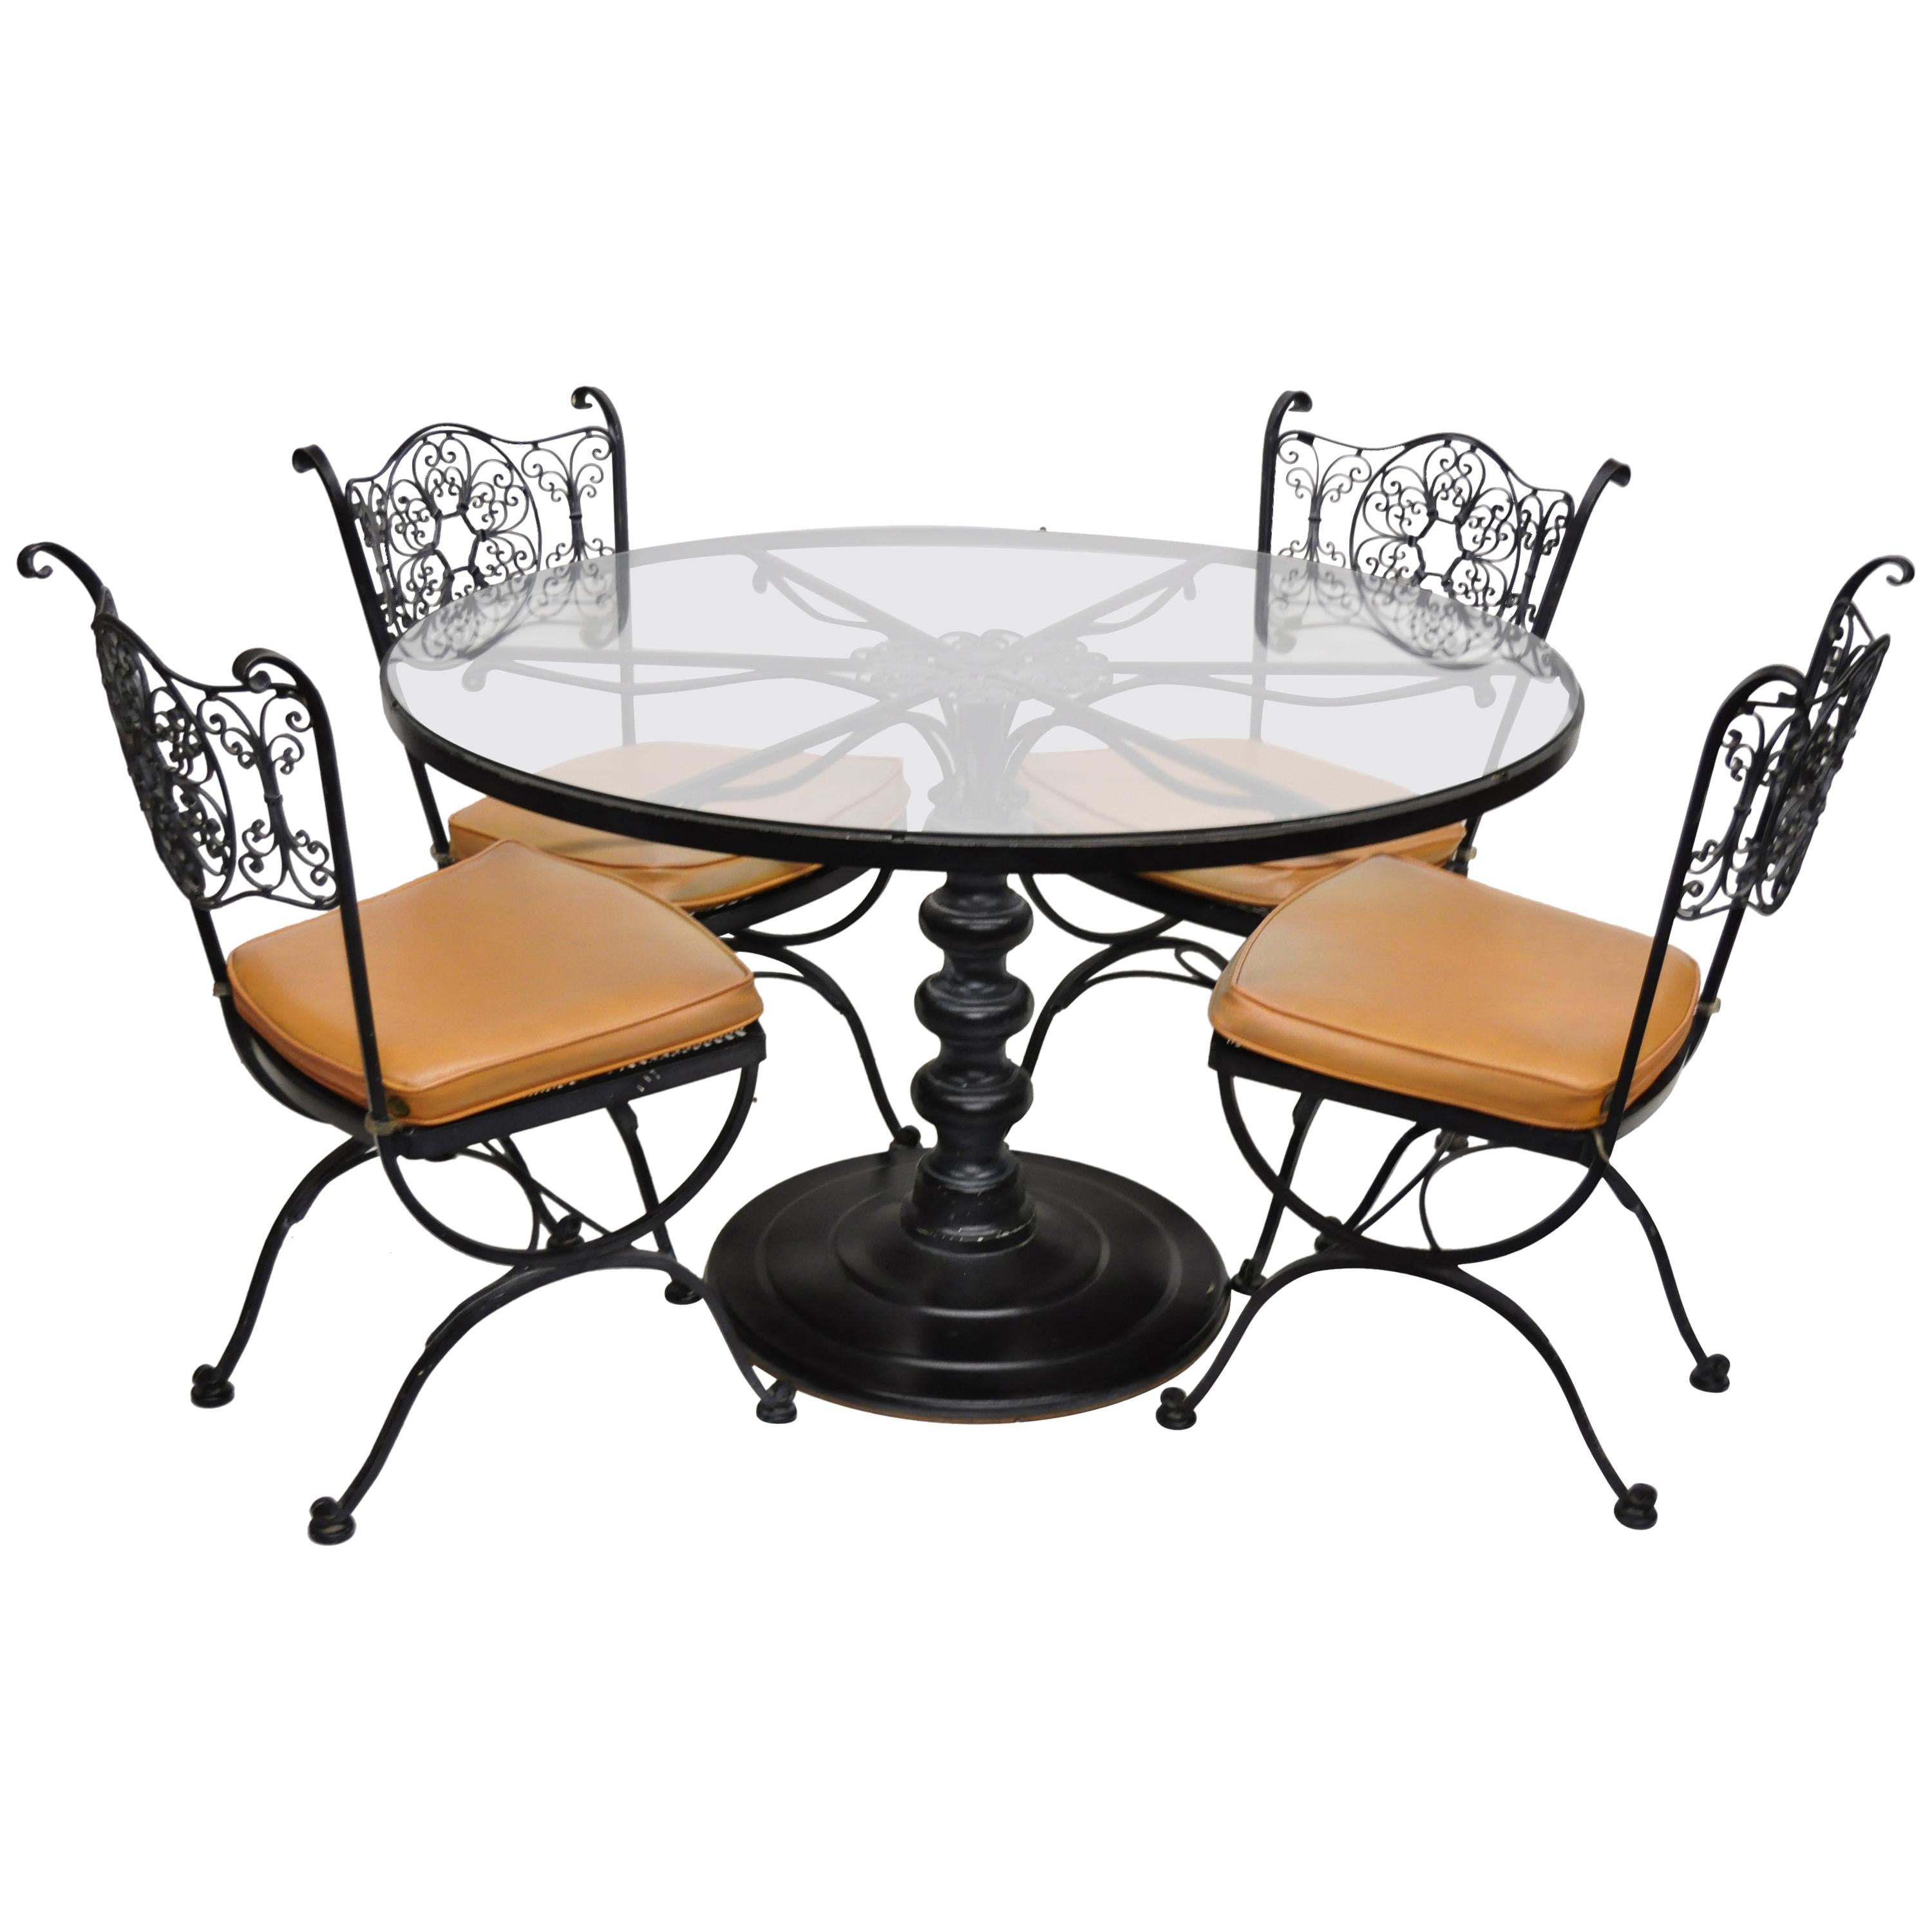 Exceptionnel Woodard Andalusian Wrought Iron Patio Dining Set Round Table 4 Chairs